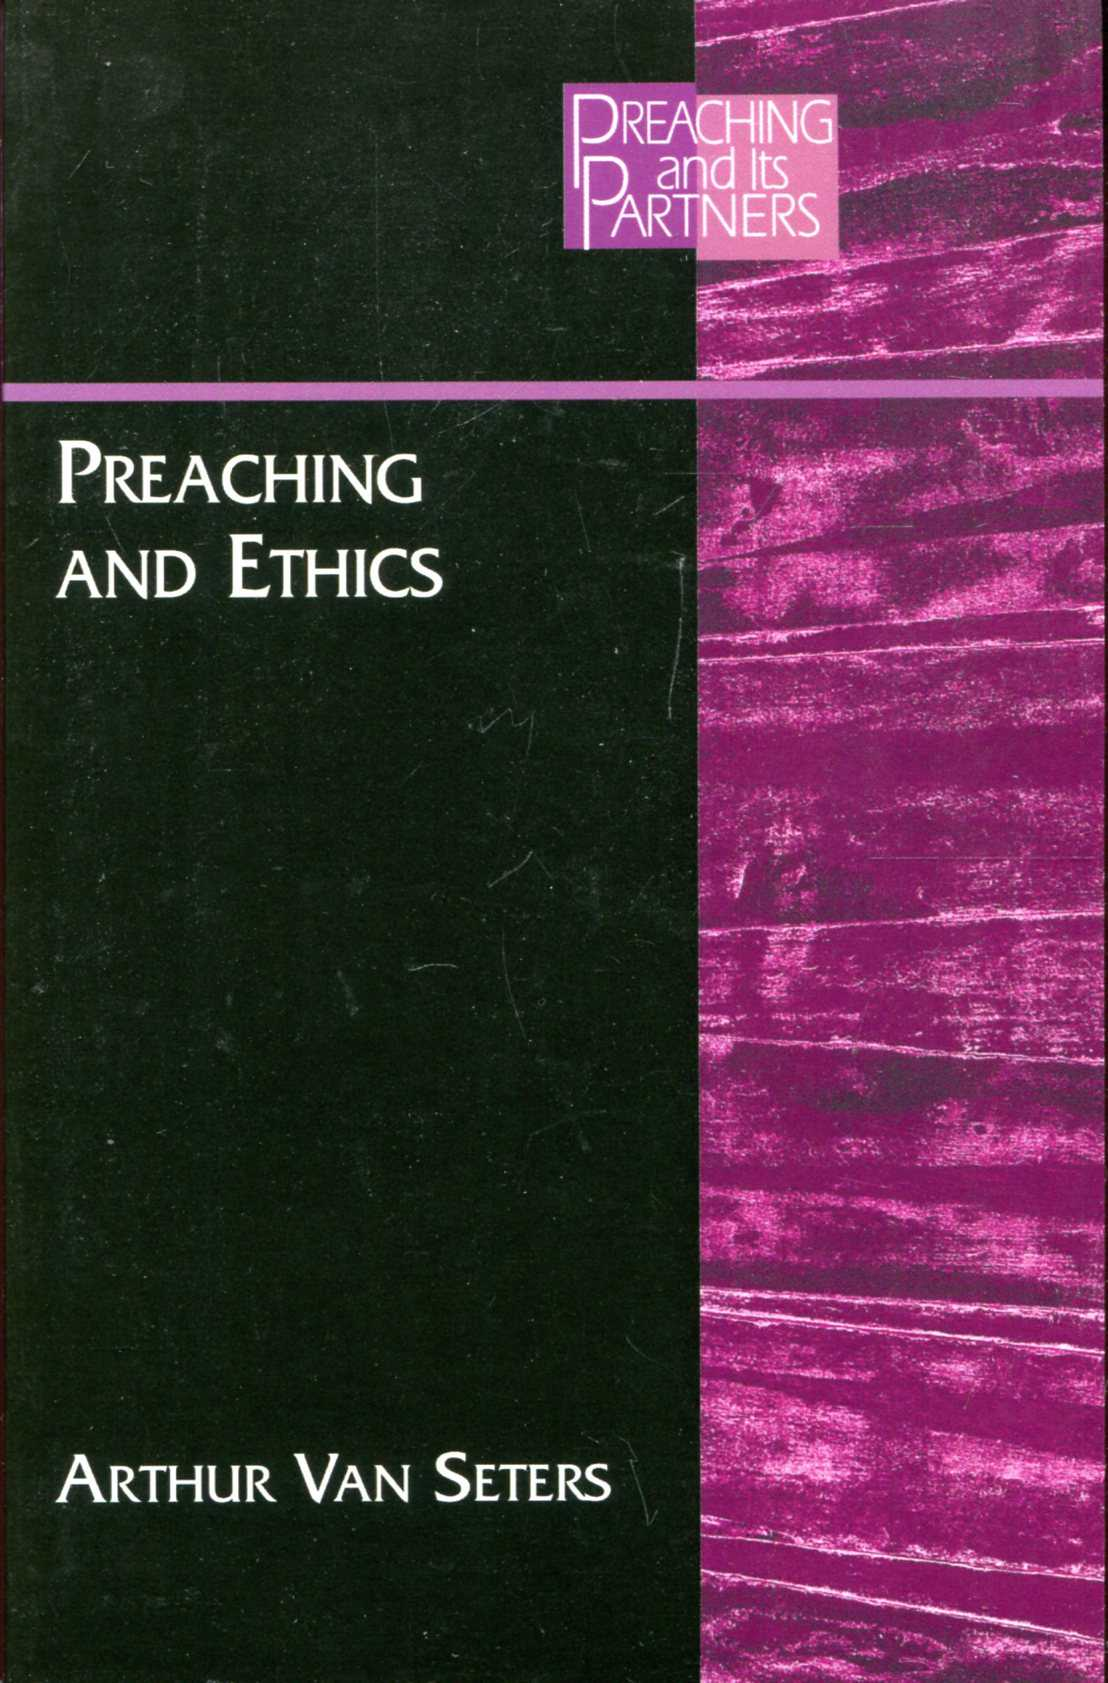 Image for Preaching and Ethics (Preaching and Its Partners)